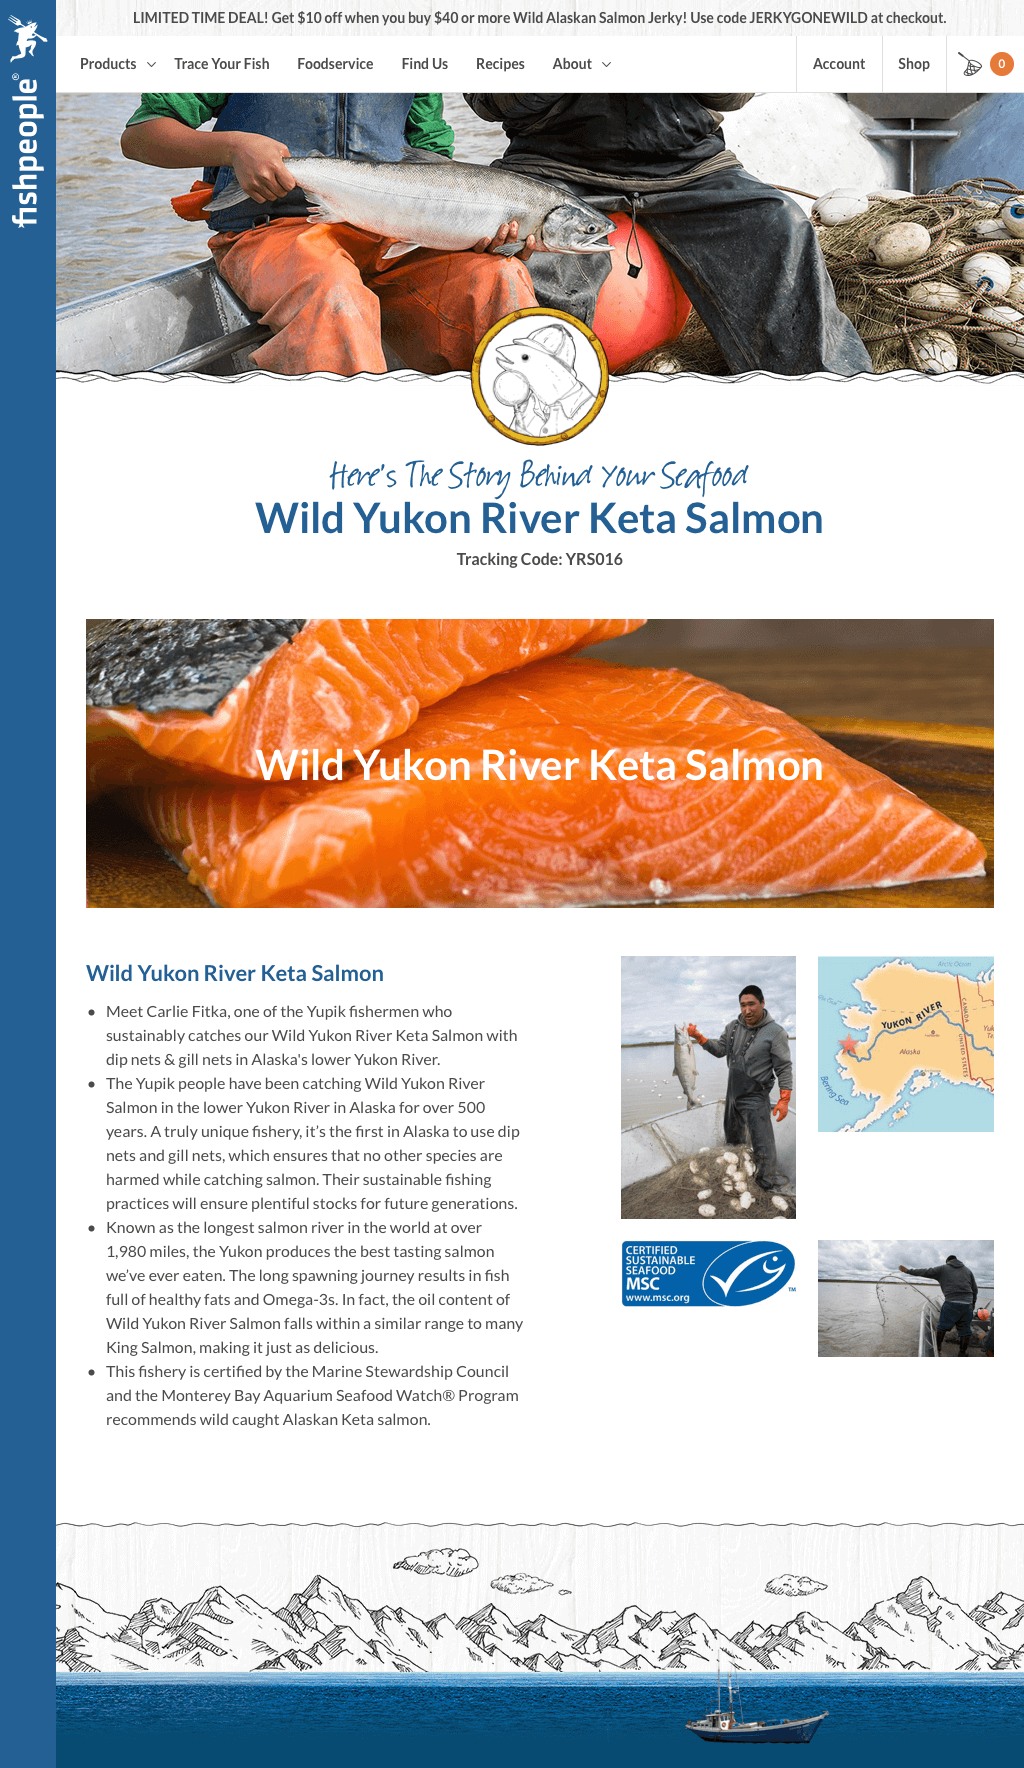 Fishpeople - The Story Behind Your Seafood: Wild Yukon River Keta Salmon